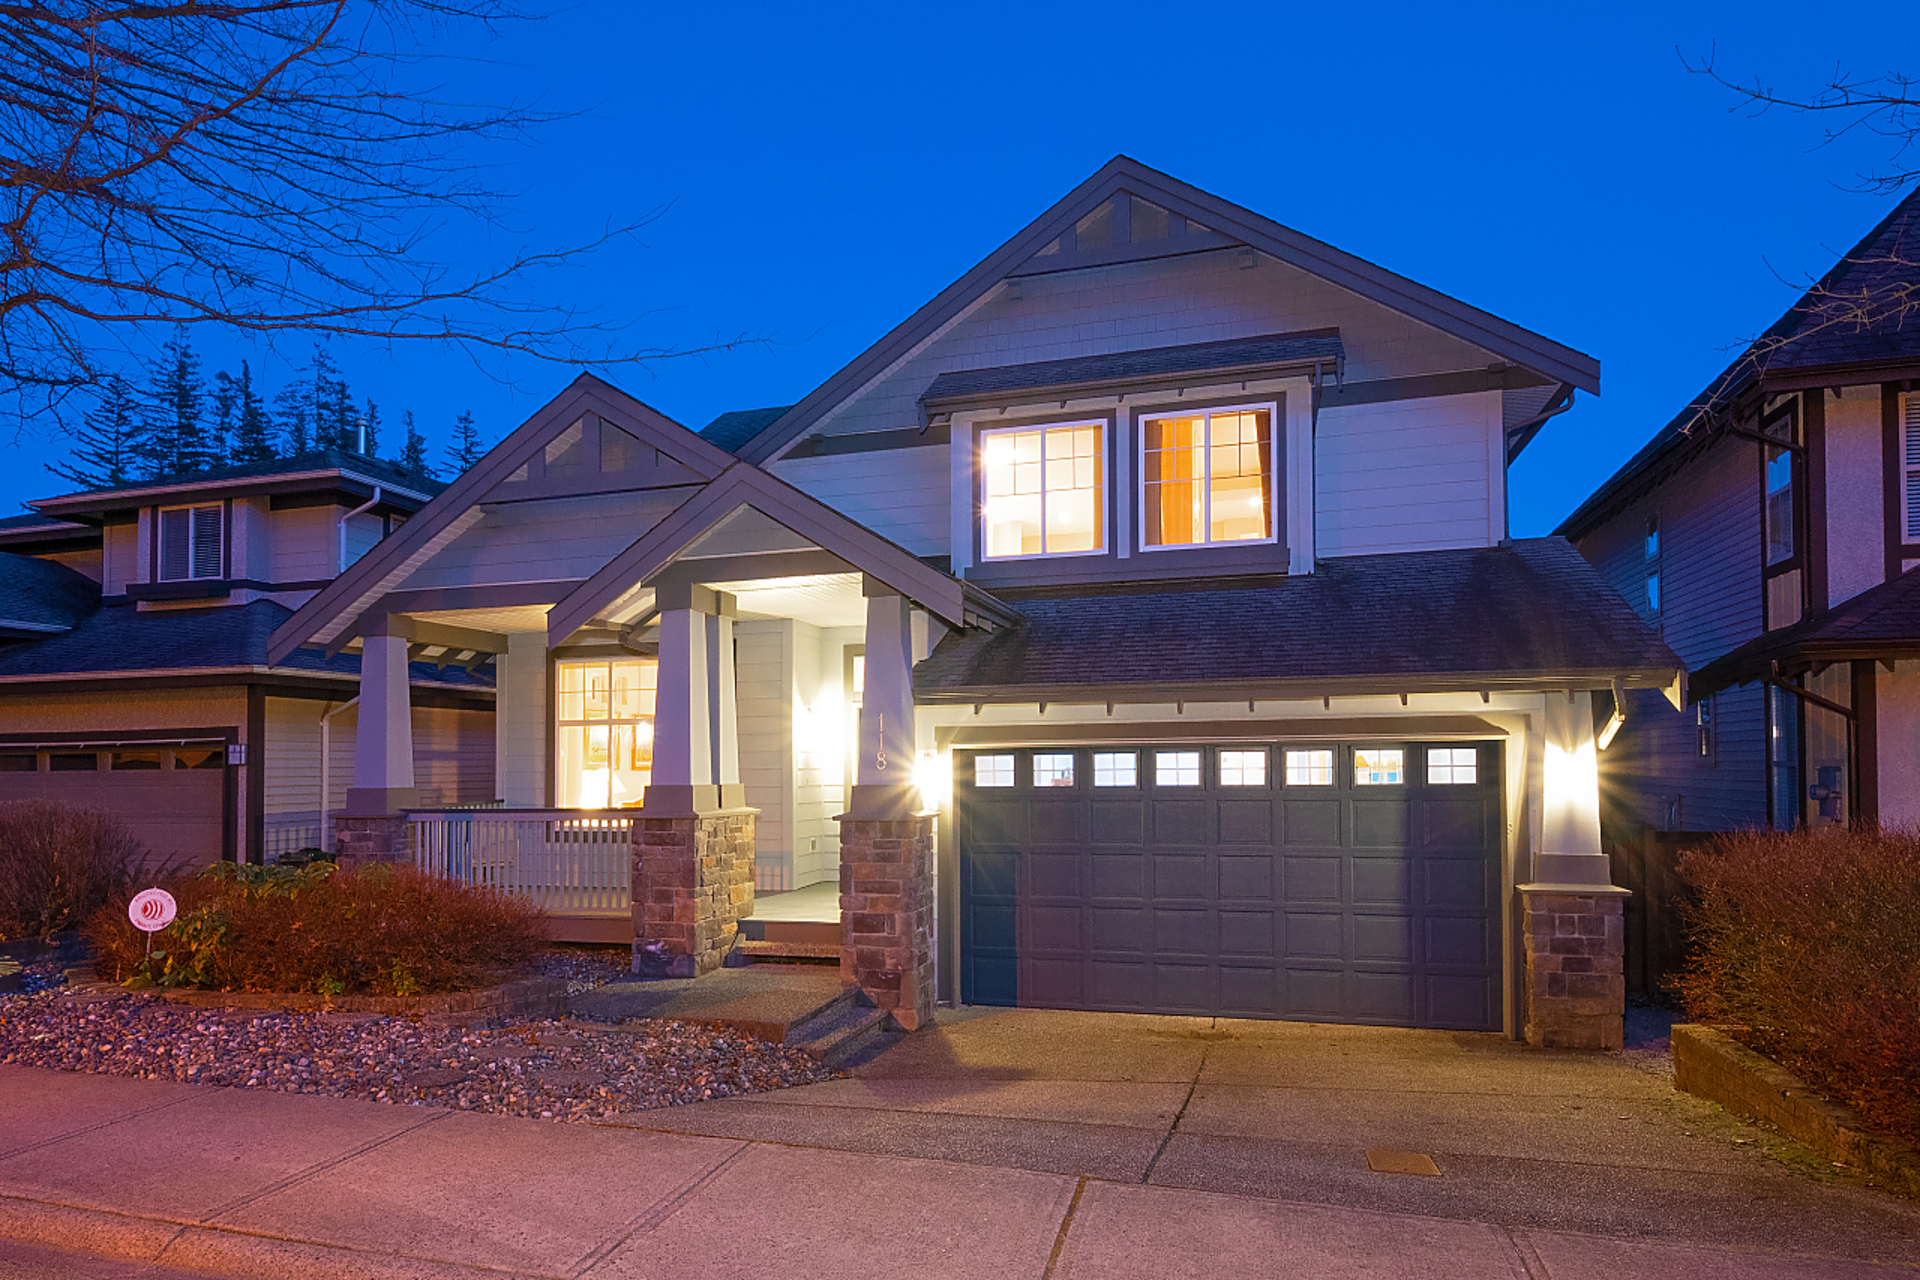 004 at 118 Fernway Drive, Heritage Woods PM, Port Moody